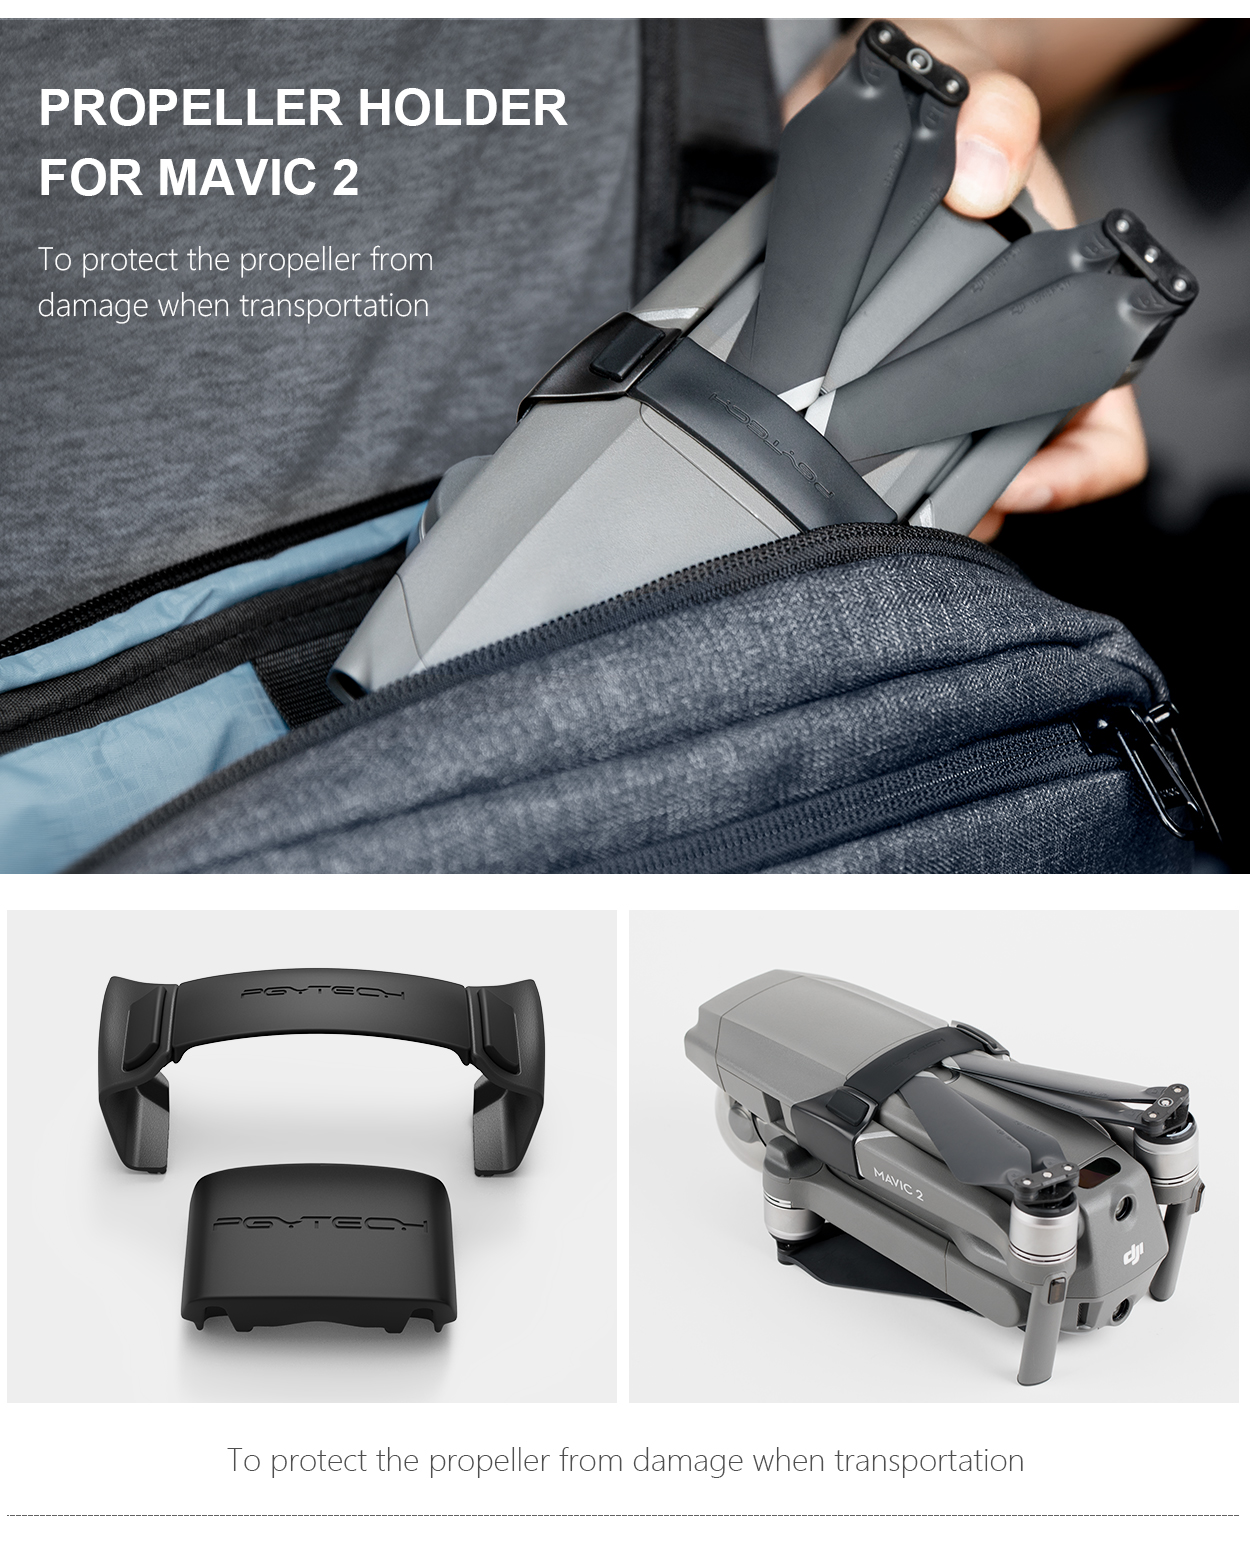 PROPELLER HOLDER FOR MAVIC 2 - To protect the propeller from damage when transportation.